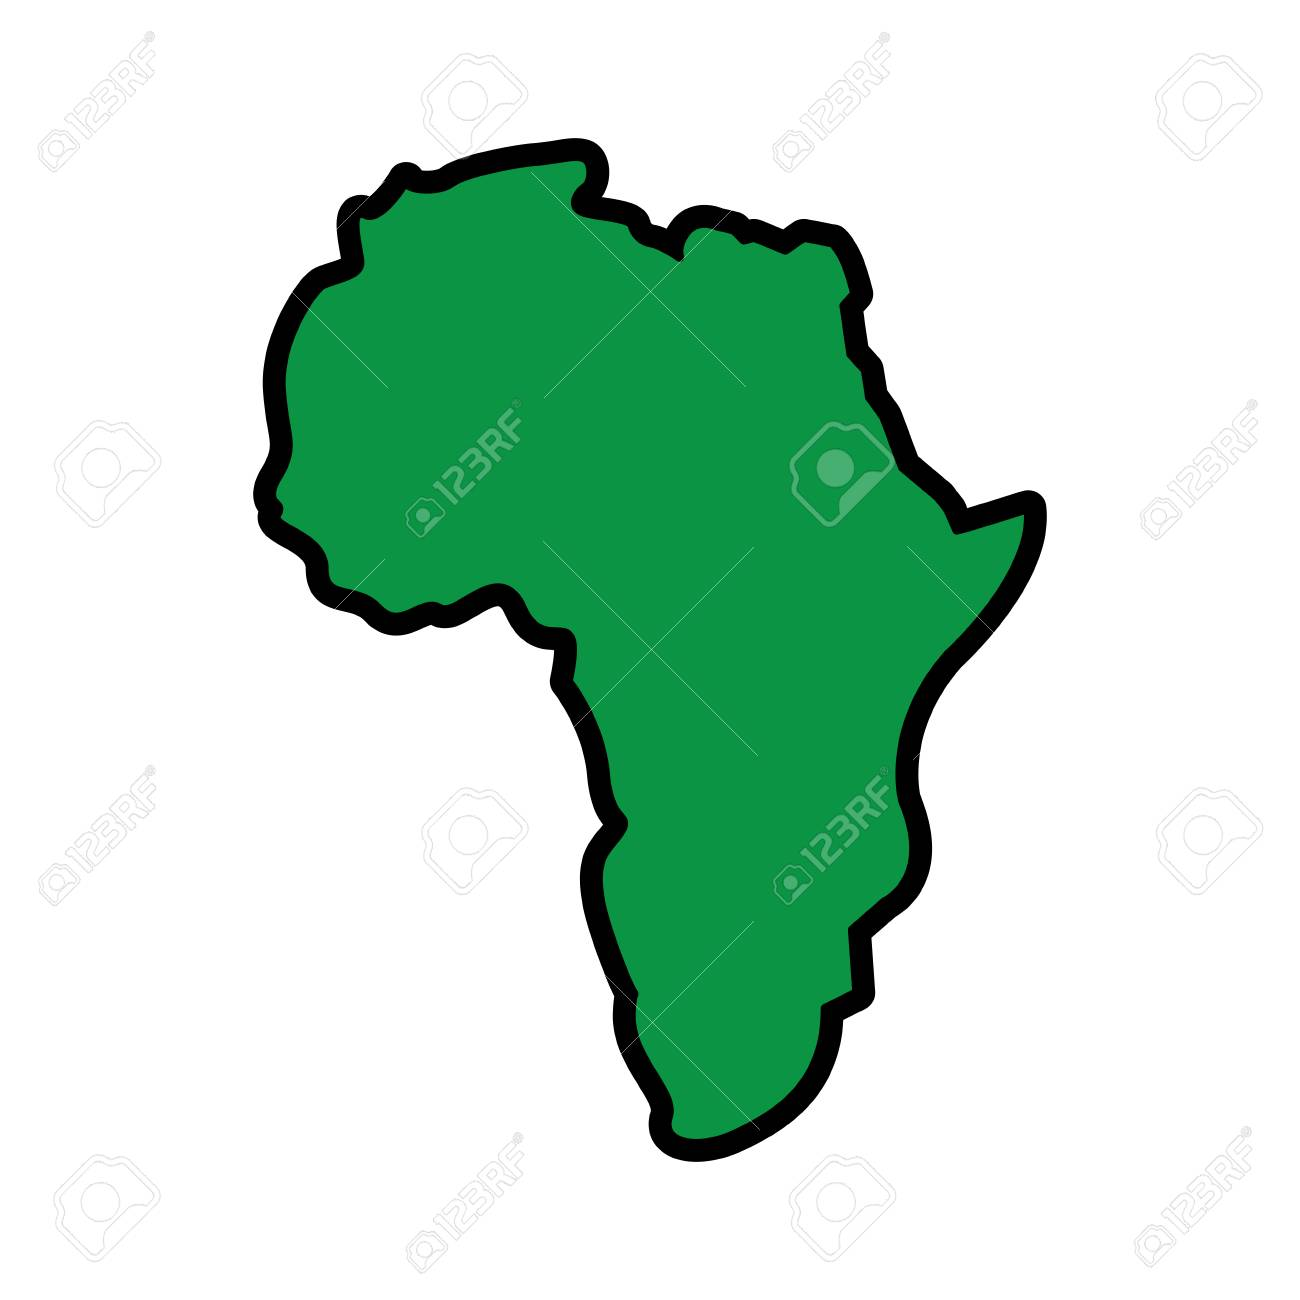 map of africa continent silhouette on a white background vector illustration green image - 95185571